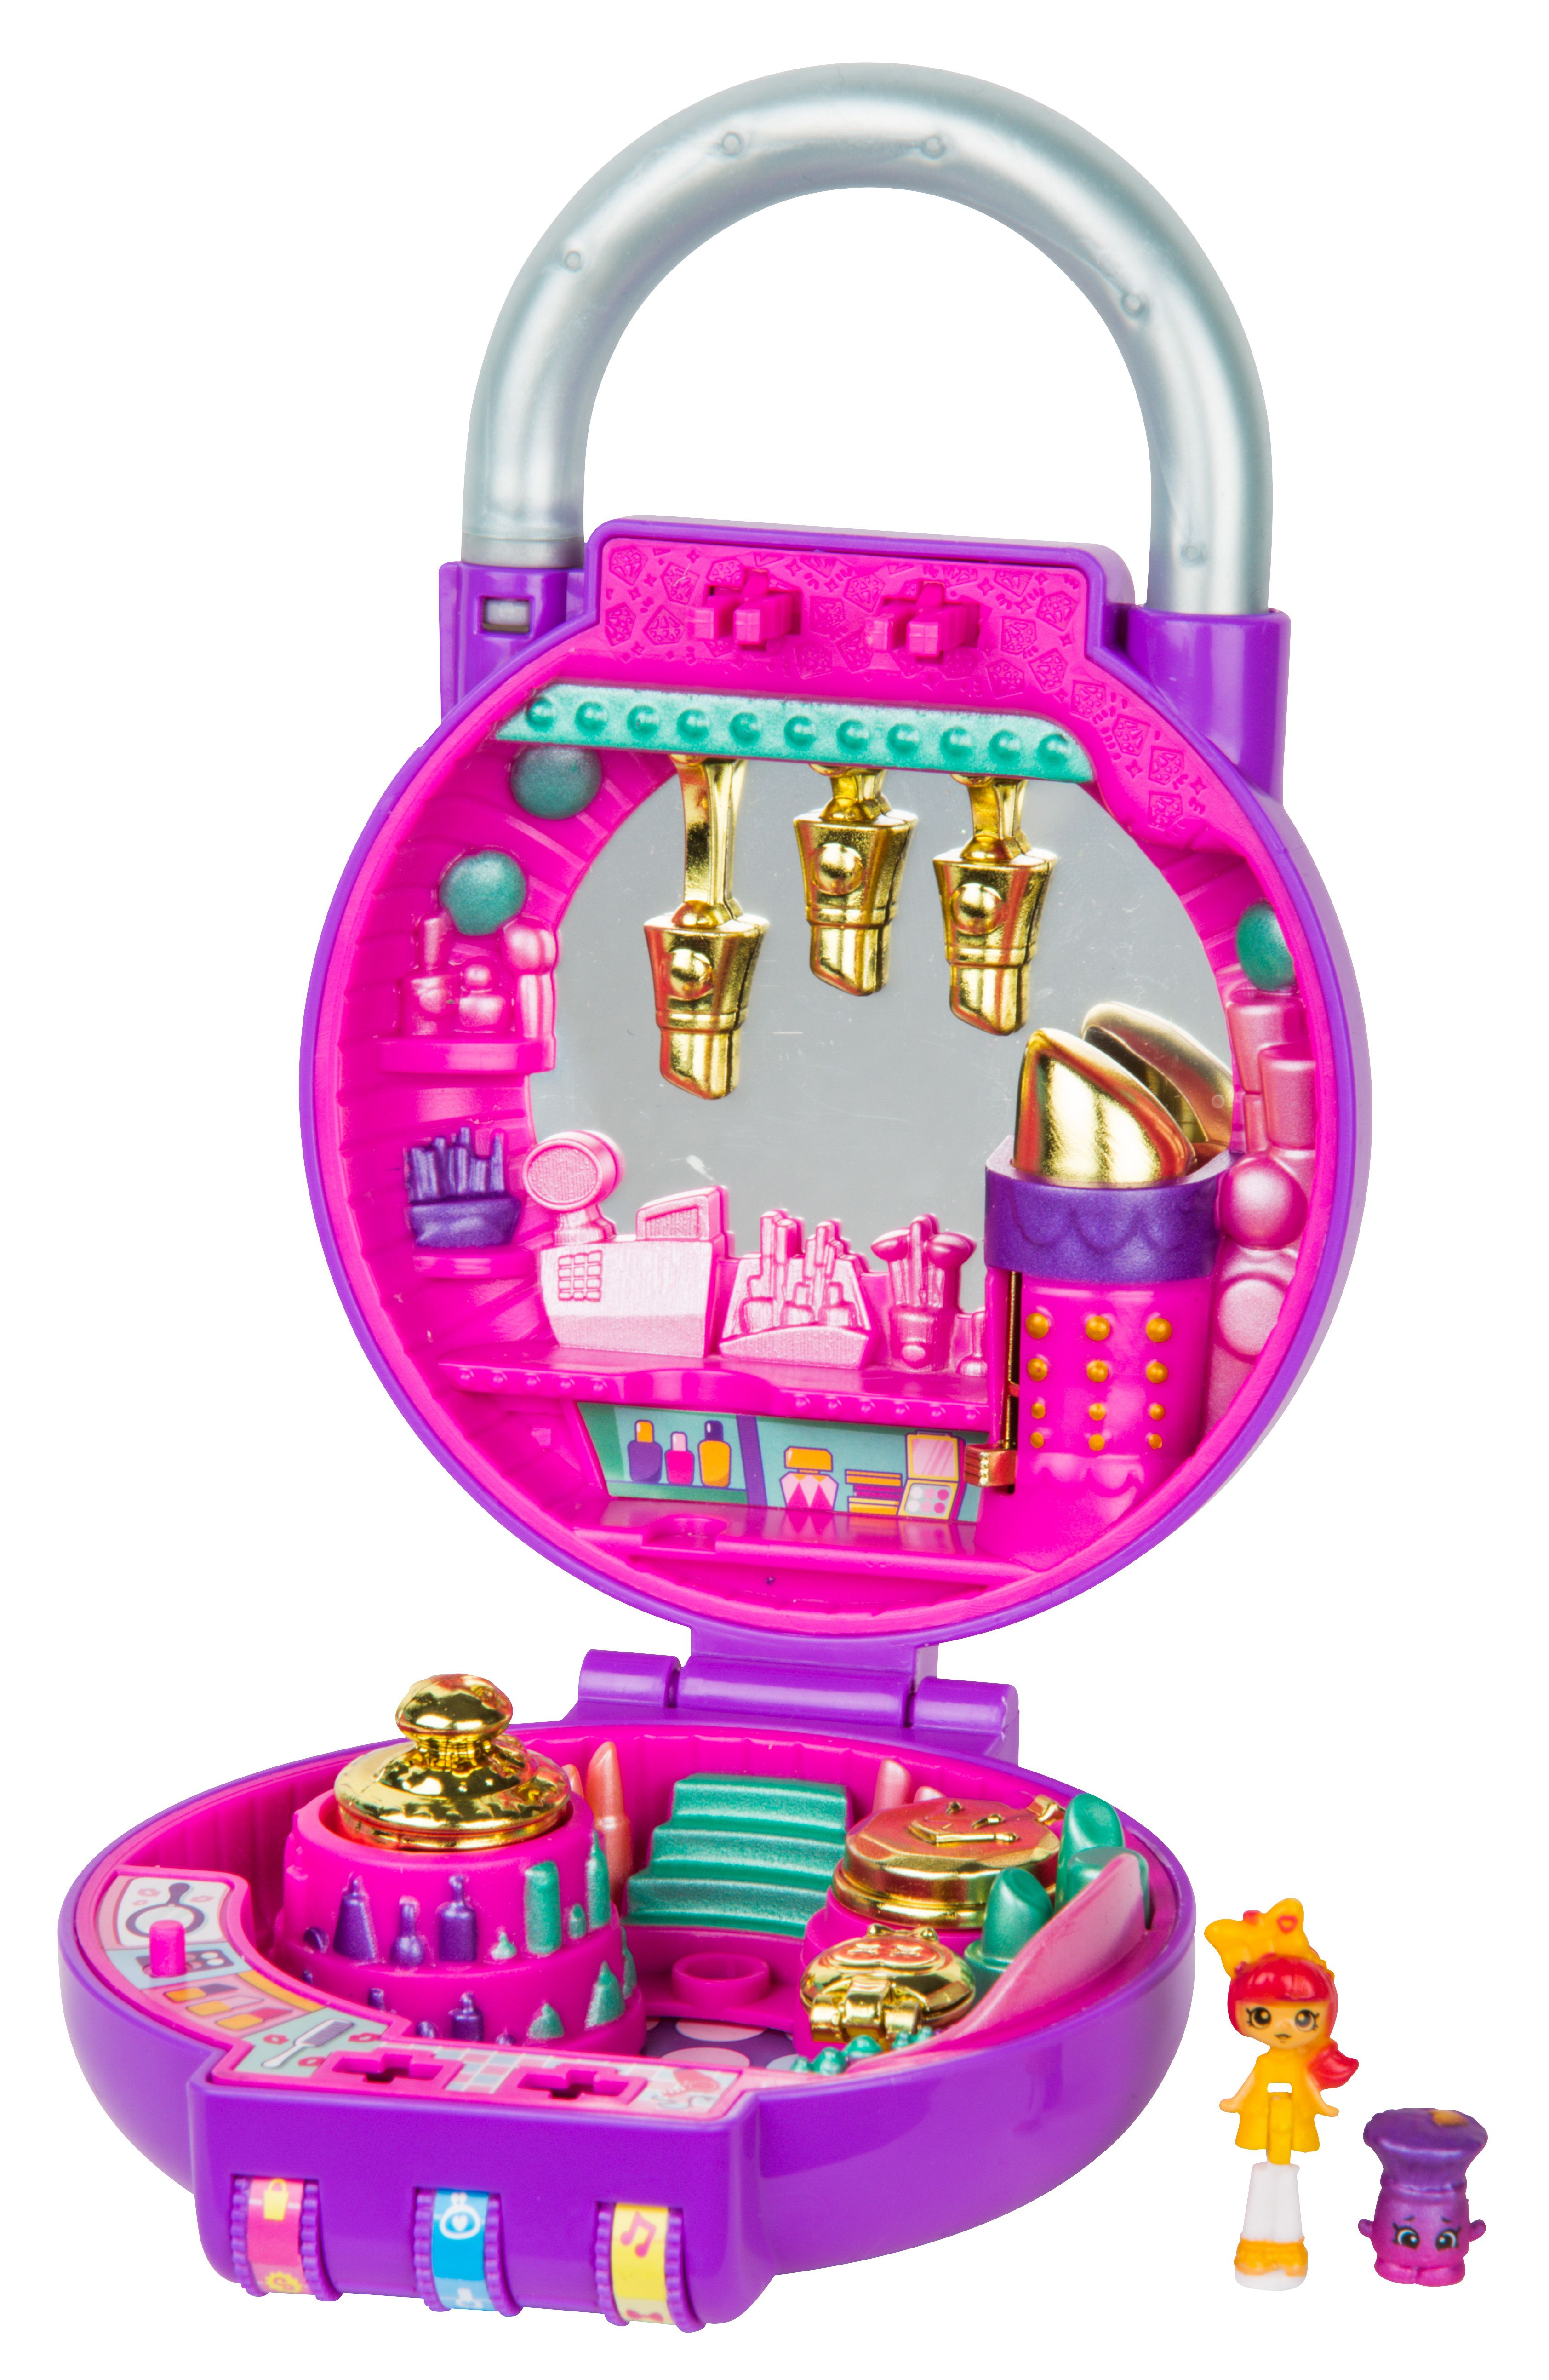 ae0bfc3418f Shopkins Lil  Secrets Lippy Lulu s Makeup Salon